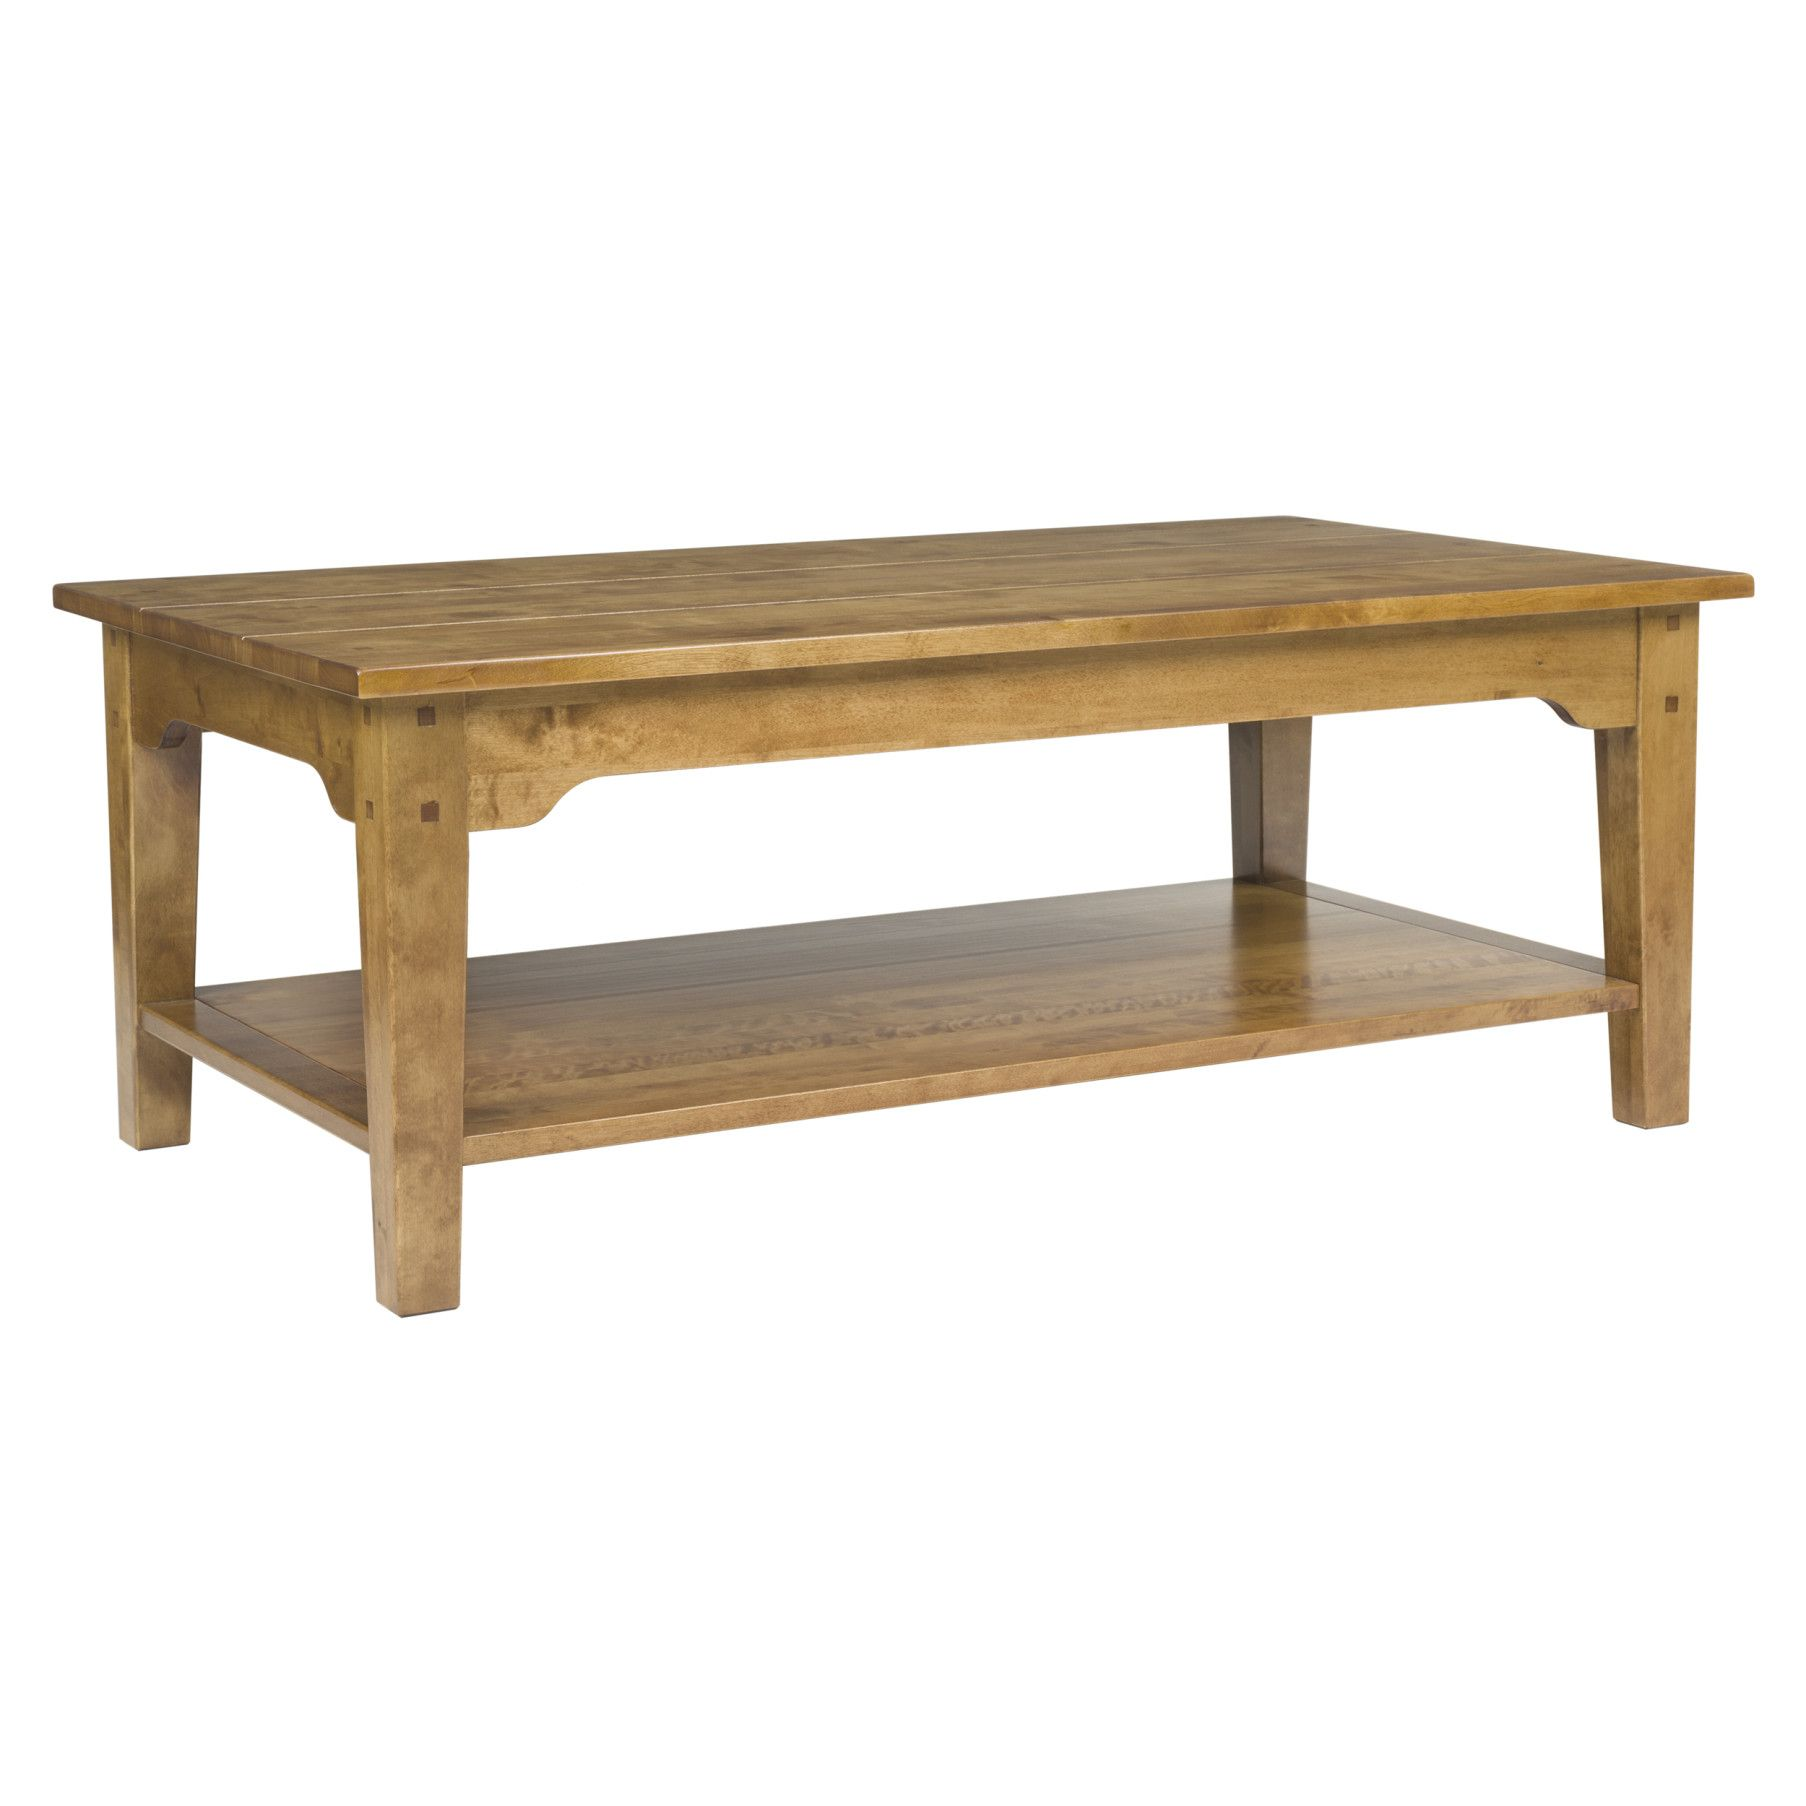 Made to order furniture Garrat Honey Rectangular Coffee Table